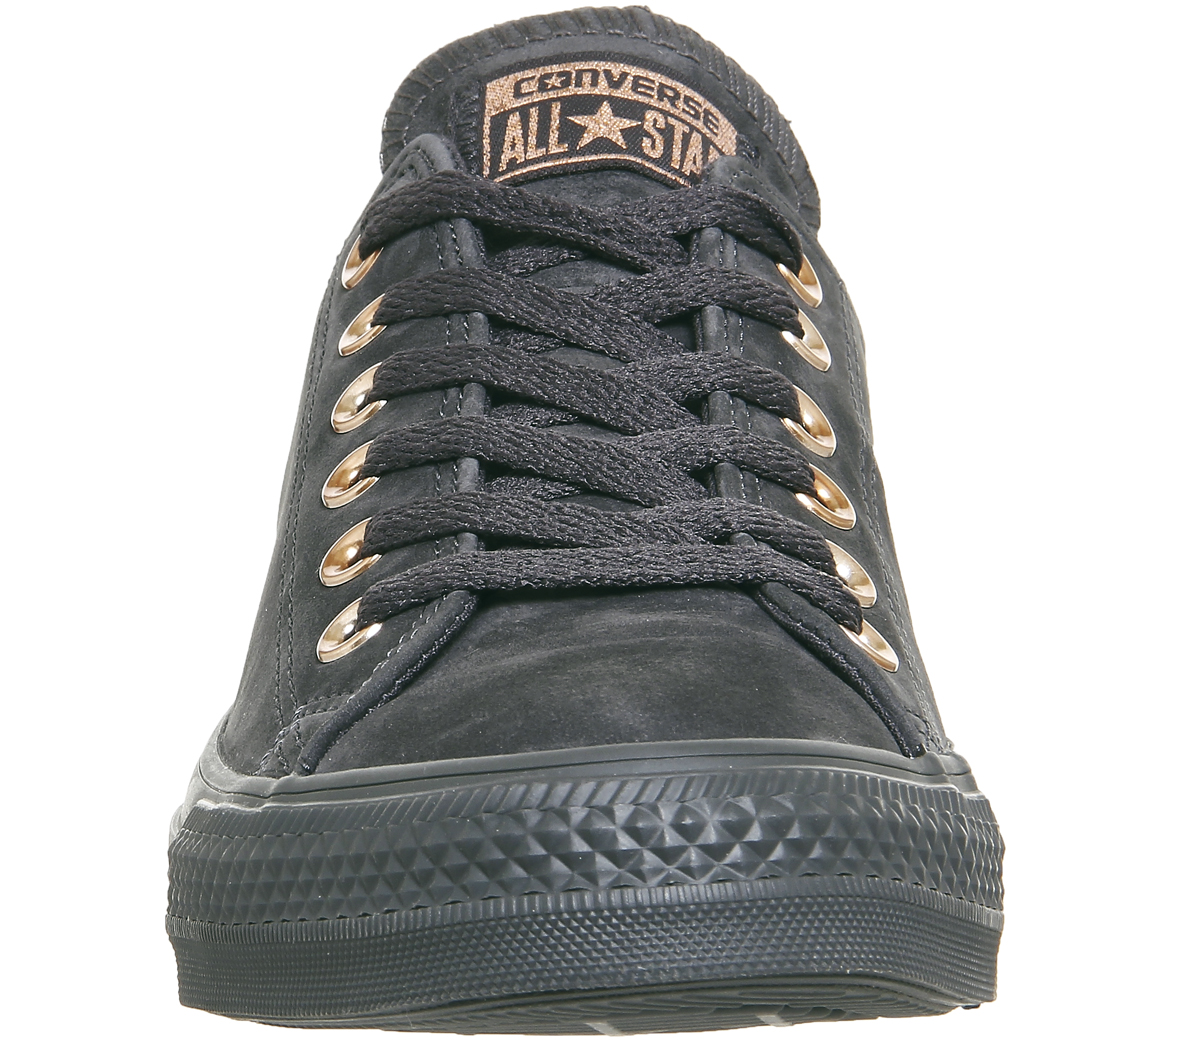 e1748a448e17 Sentinel Womens Converse All Star Low Leather ALMOST BLACK ROSE GOLD  Trainers Shoes